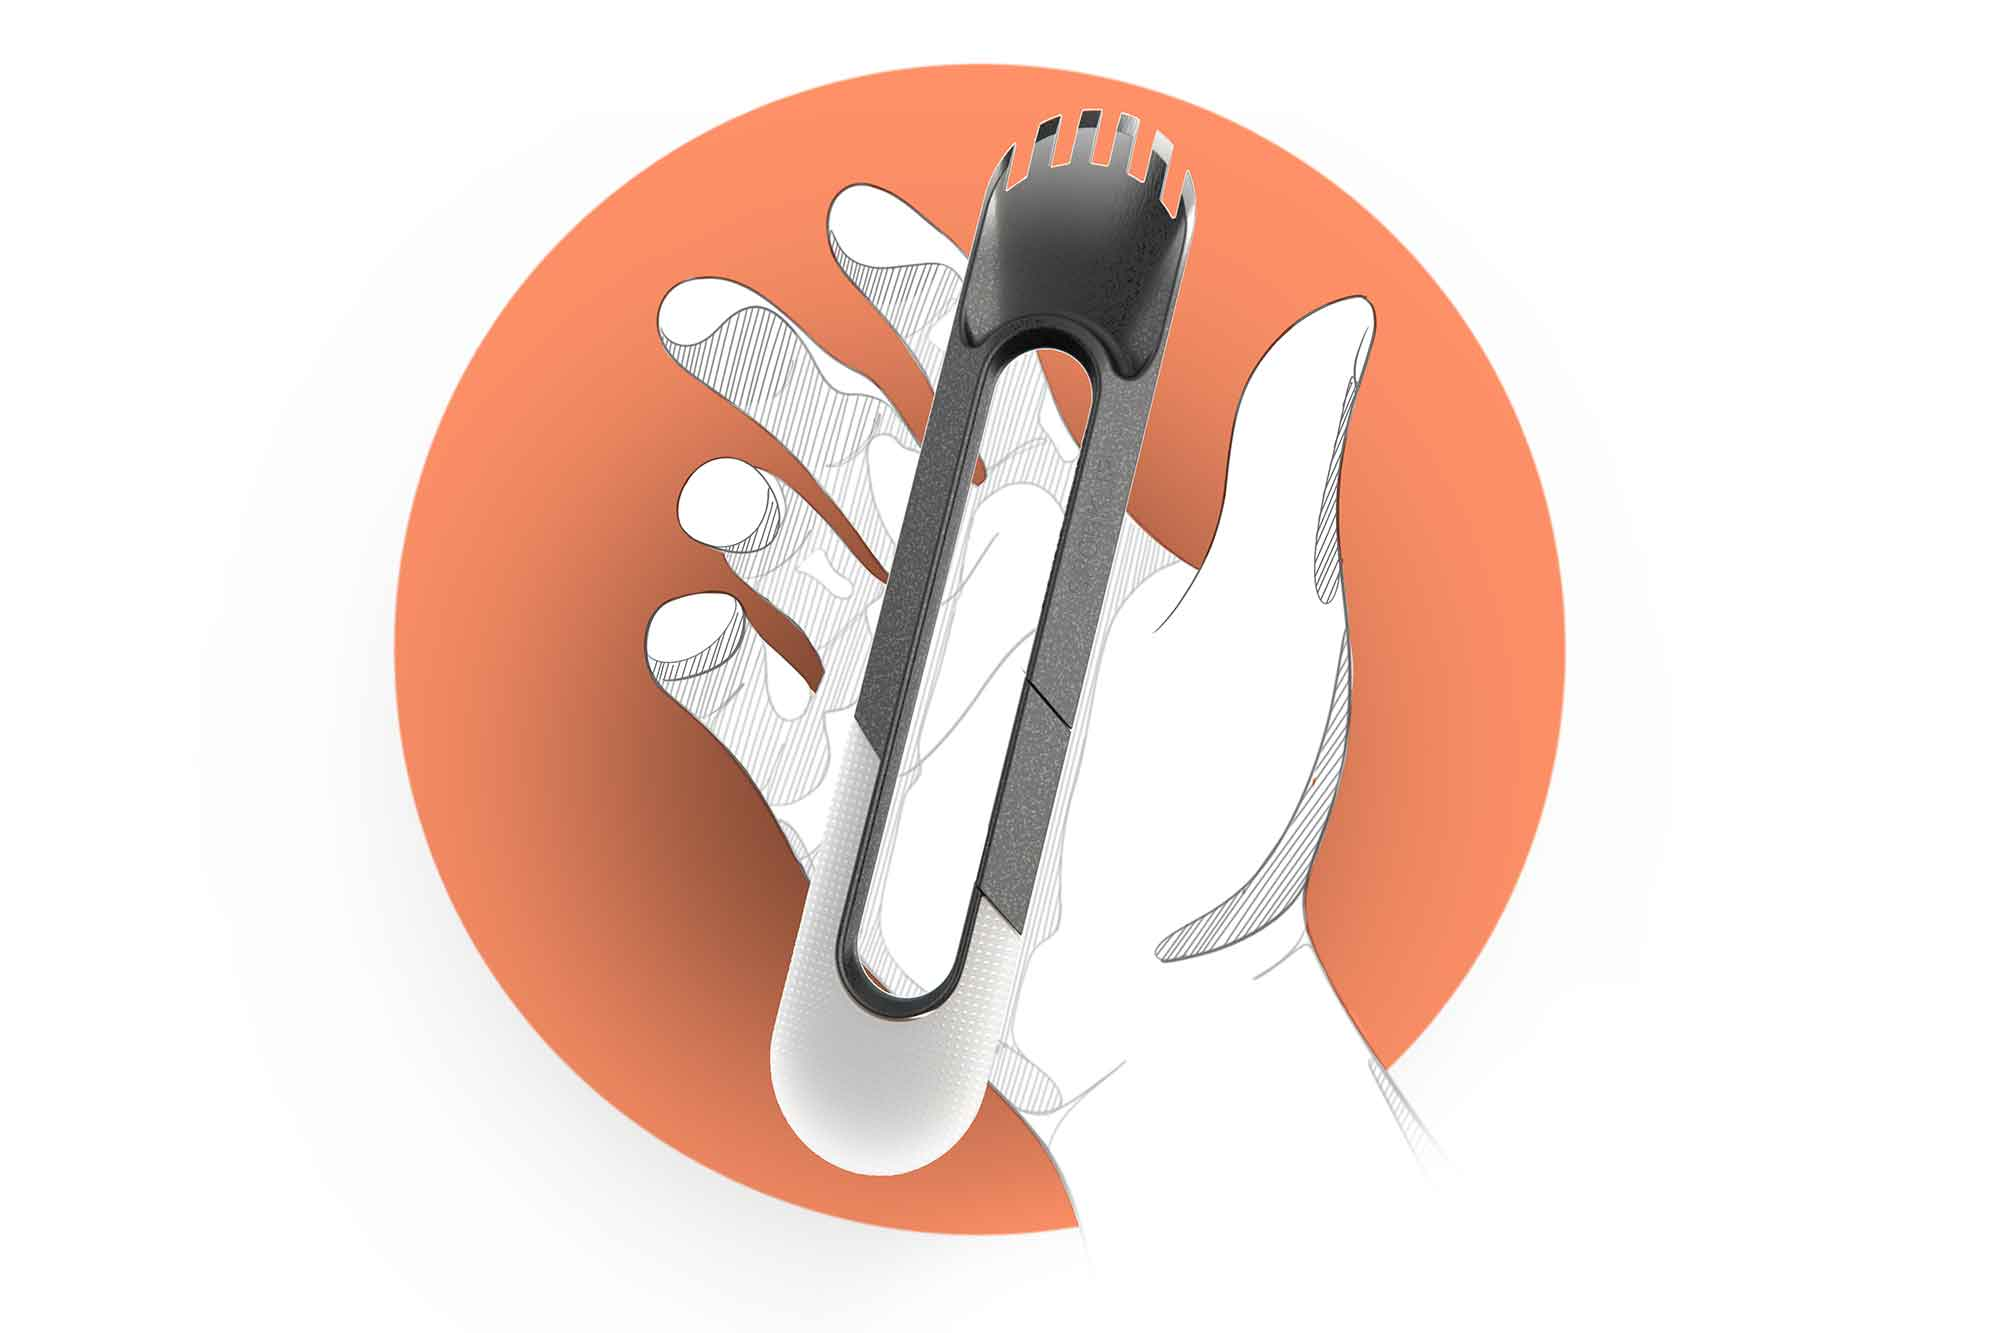 Designed for only the most strenuous meals, Sporklip combines a spatula, carabiner, bottle opener, knife, and spork all in one.